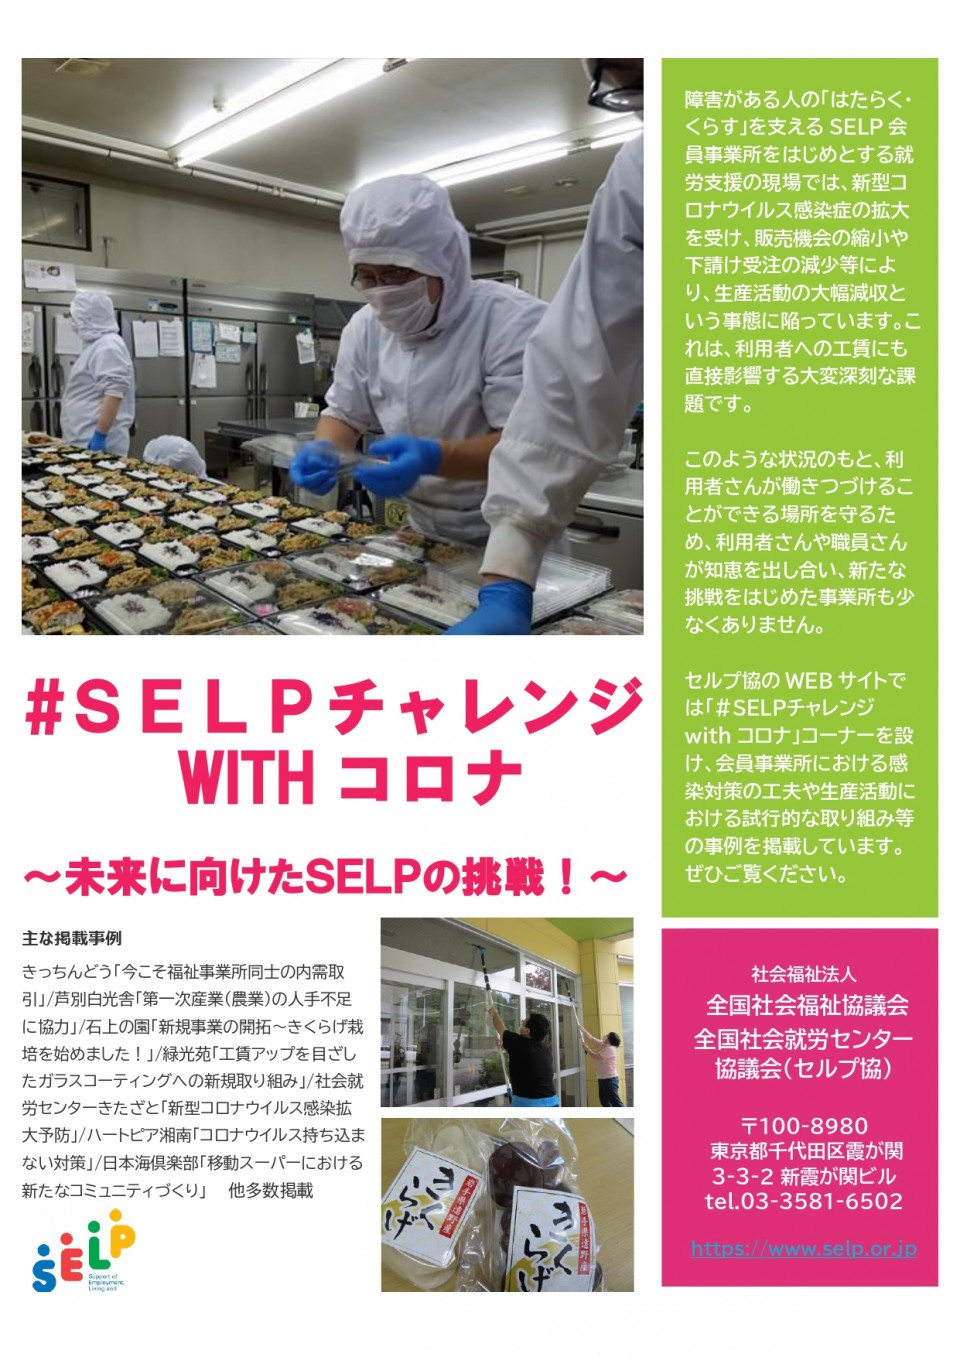 #SELPチャレンジwithコロナ_page-0001.jpg